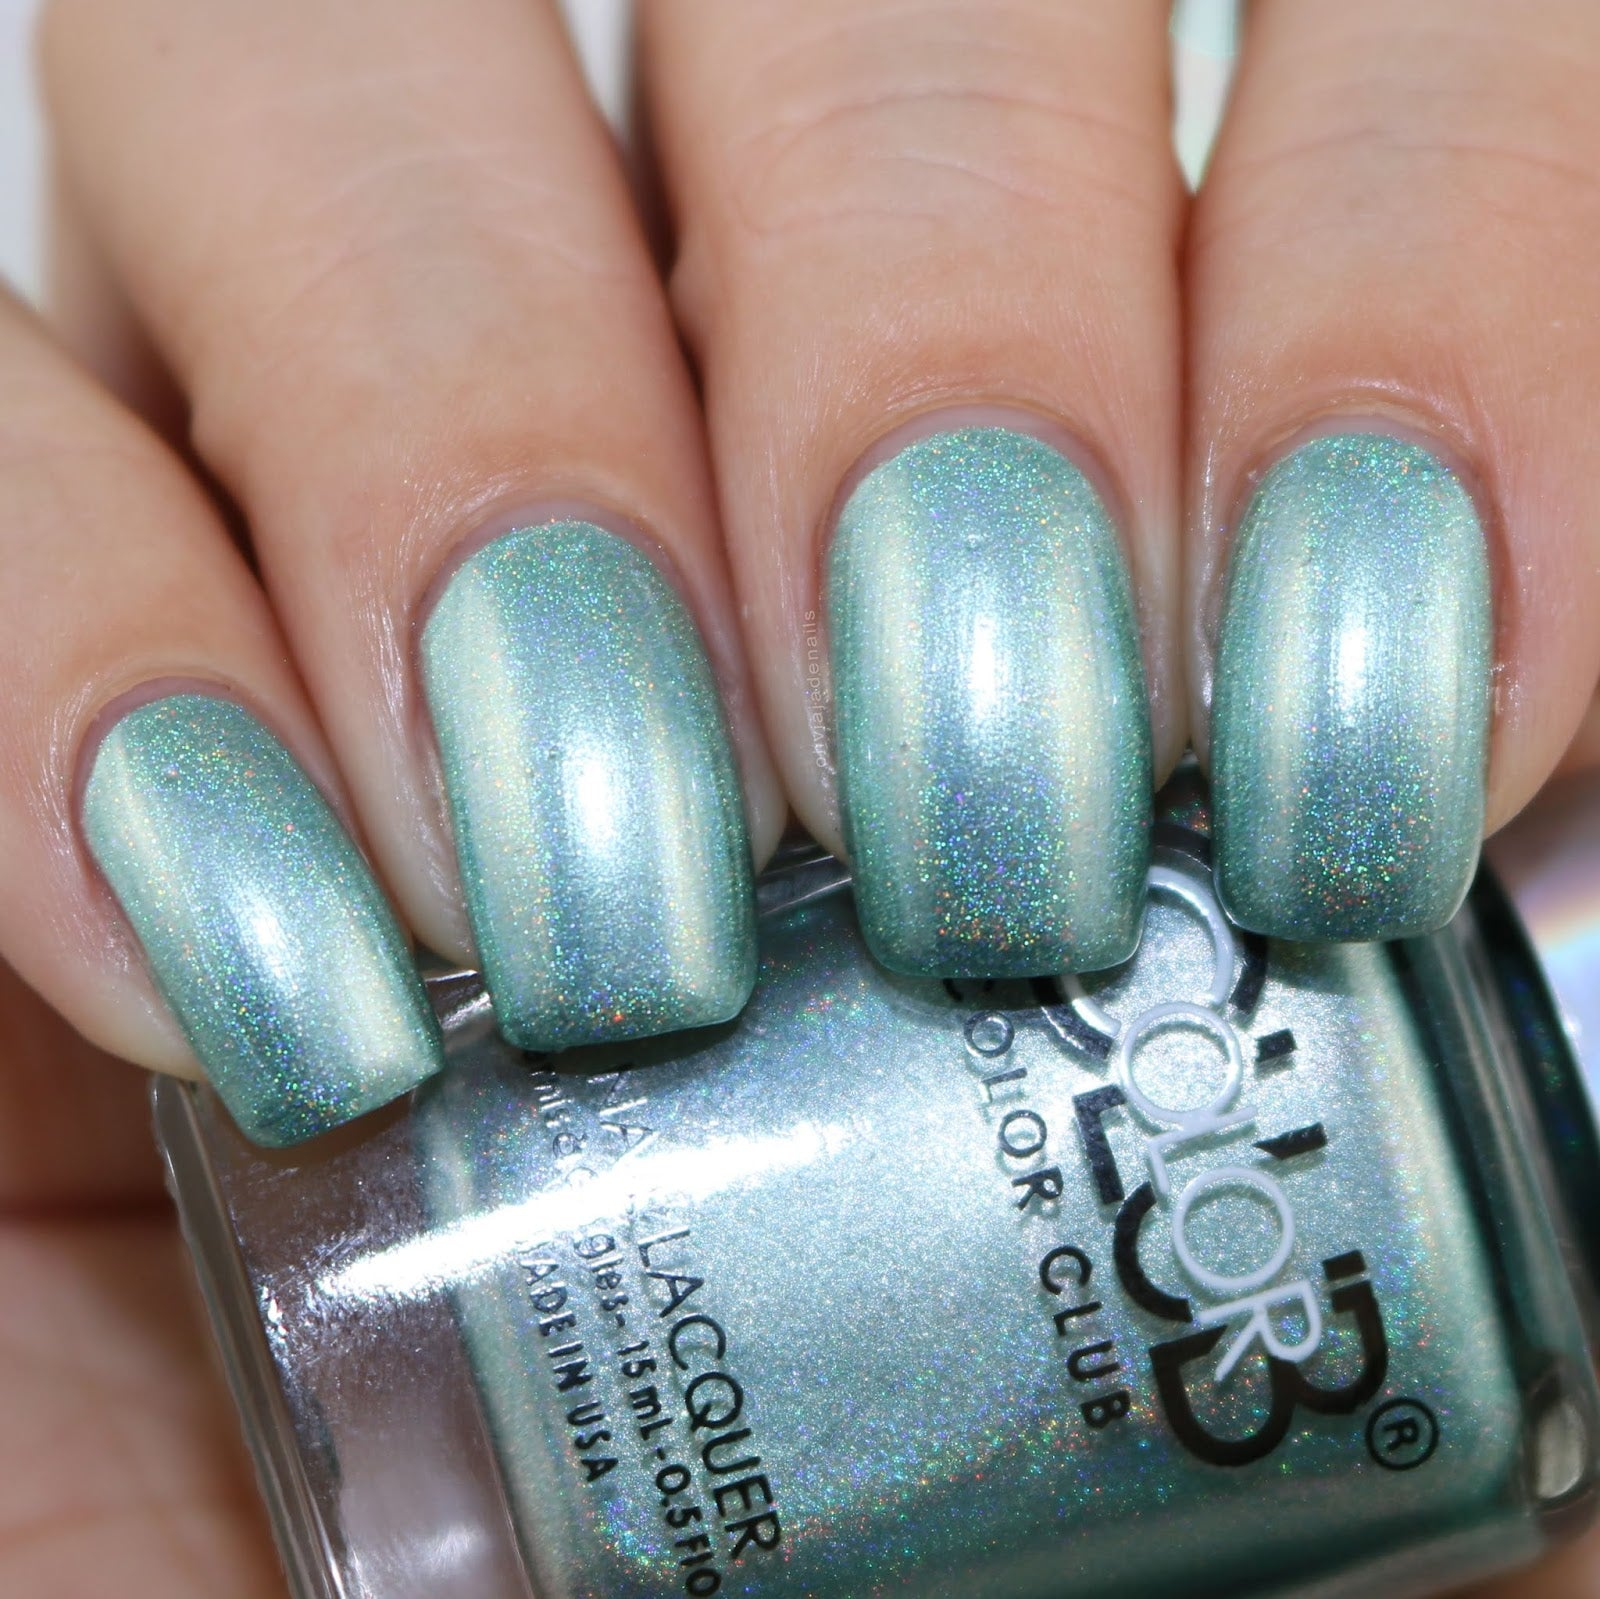 Halo Chrome 1159 - Tougher than Nails